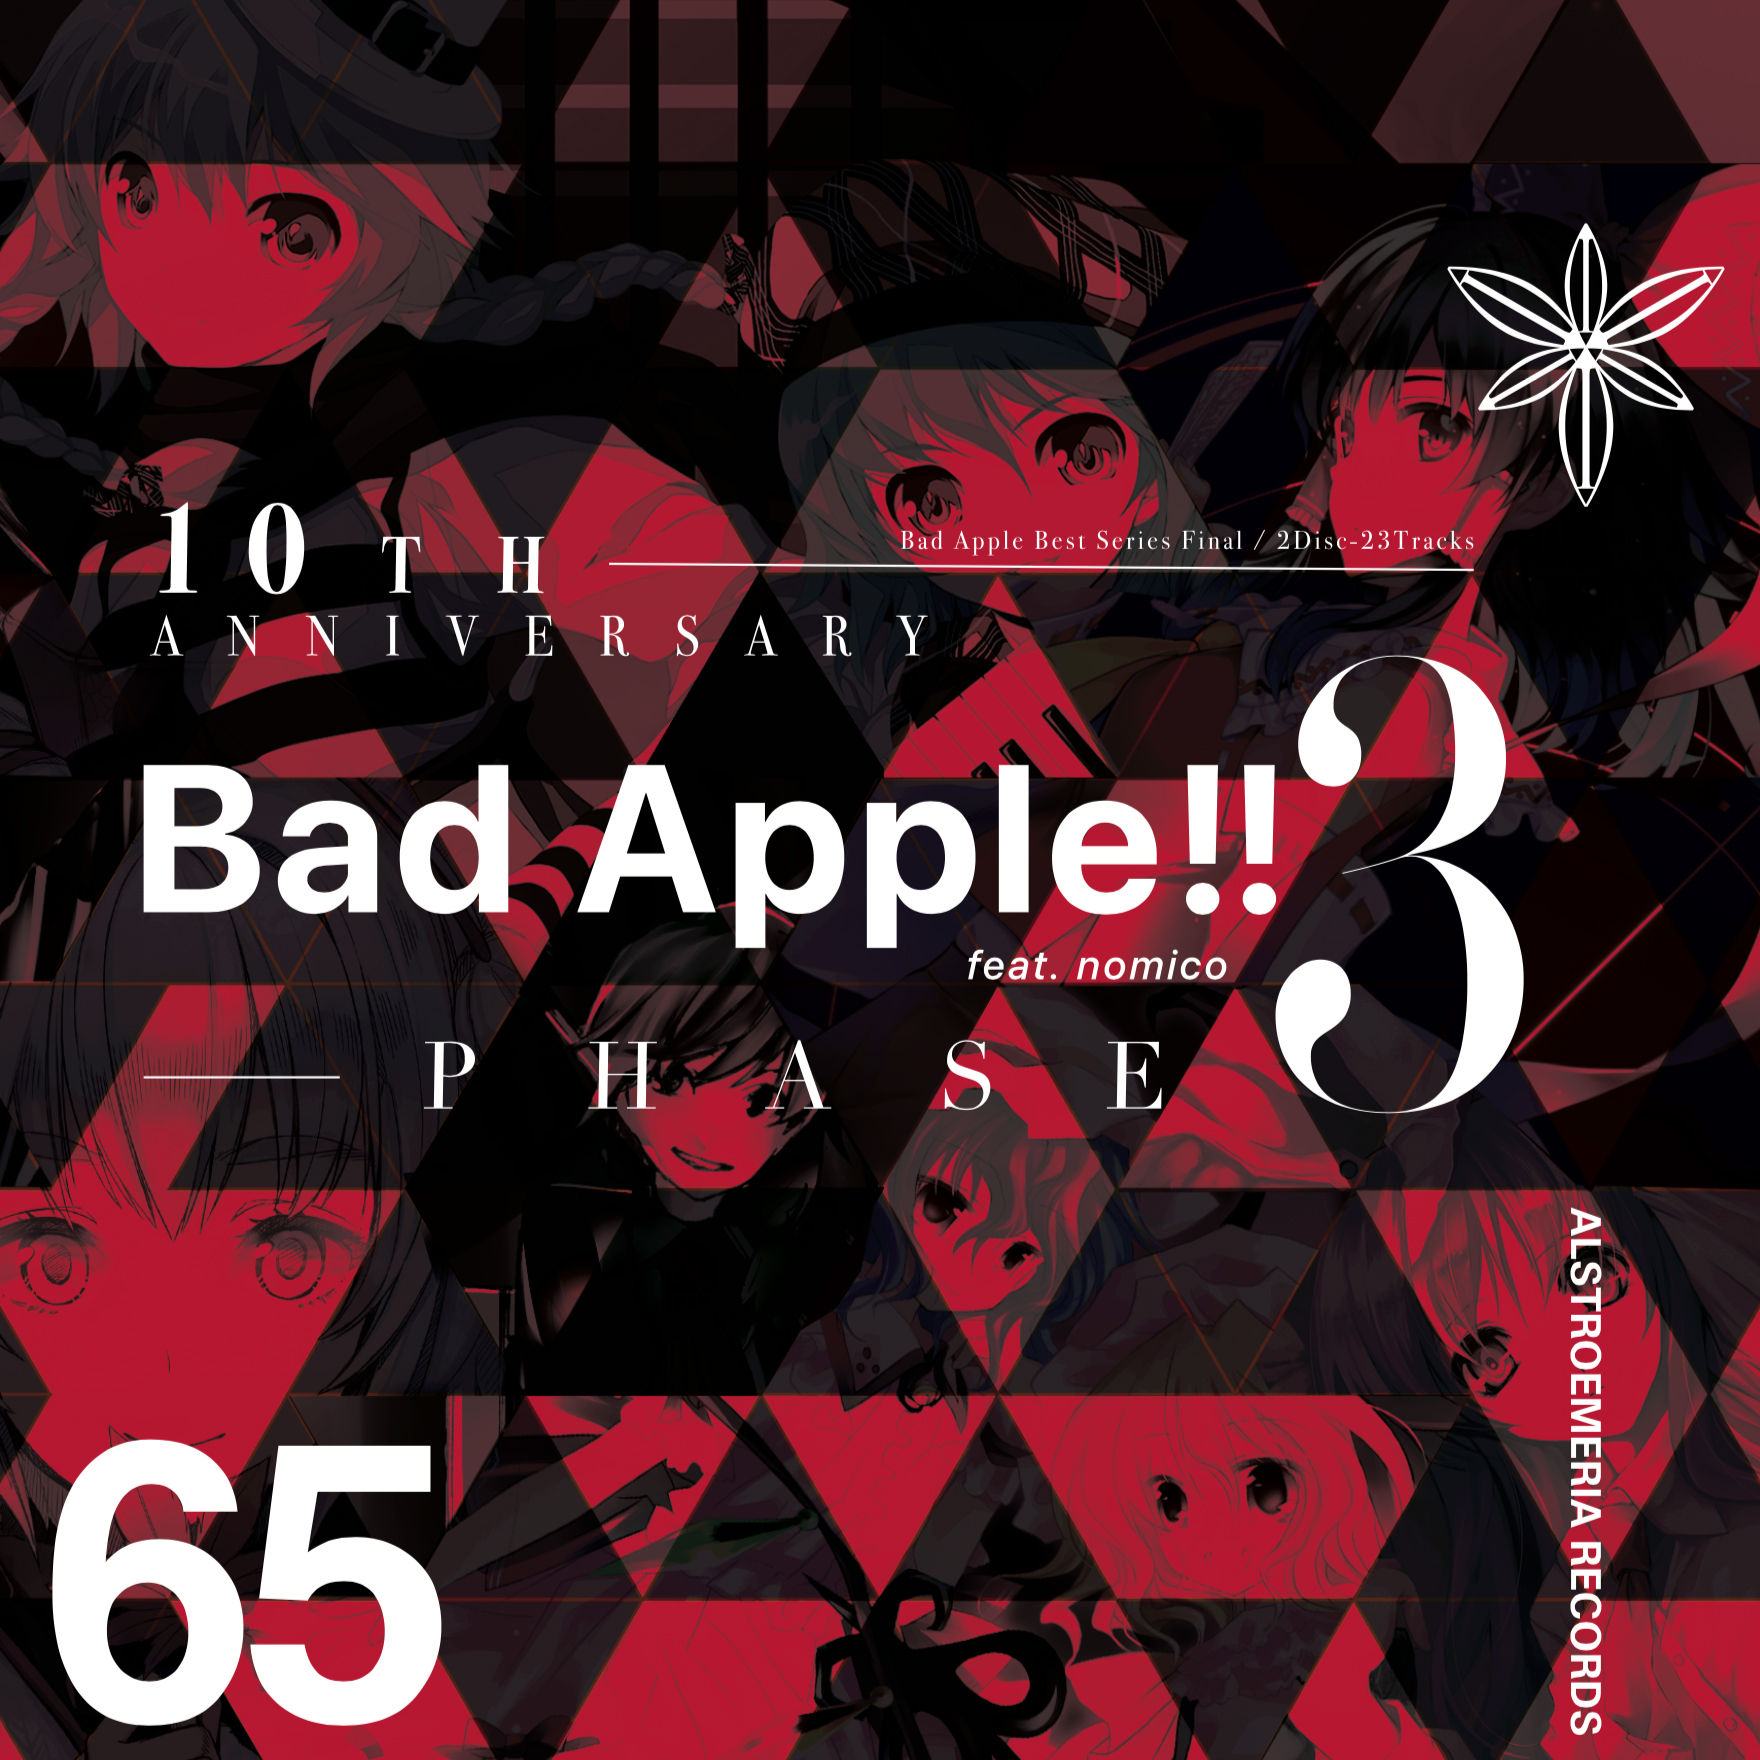 ARCD0065 / 10th Anniversary Bad Apple!! feat.nomico PHASE 3